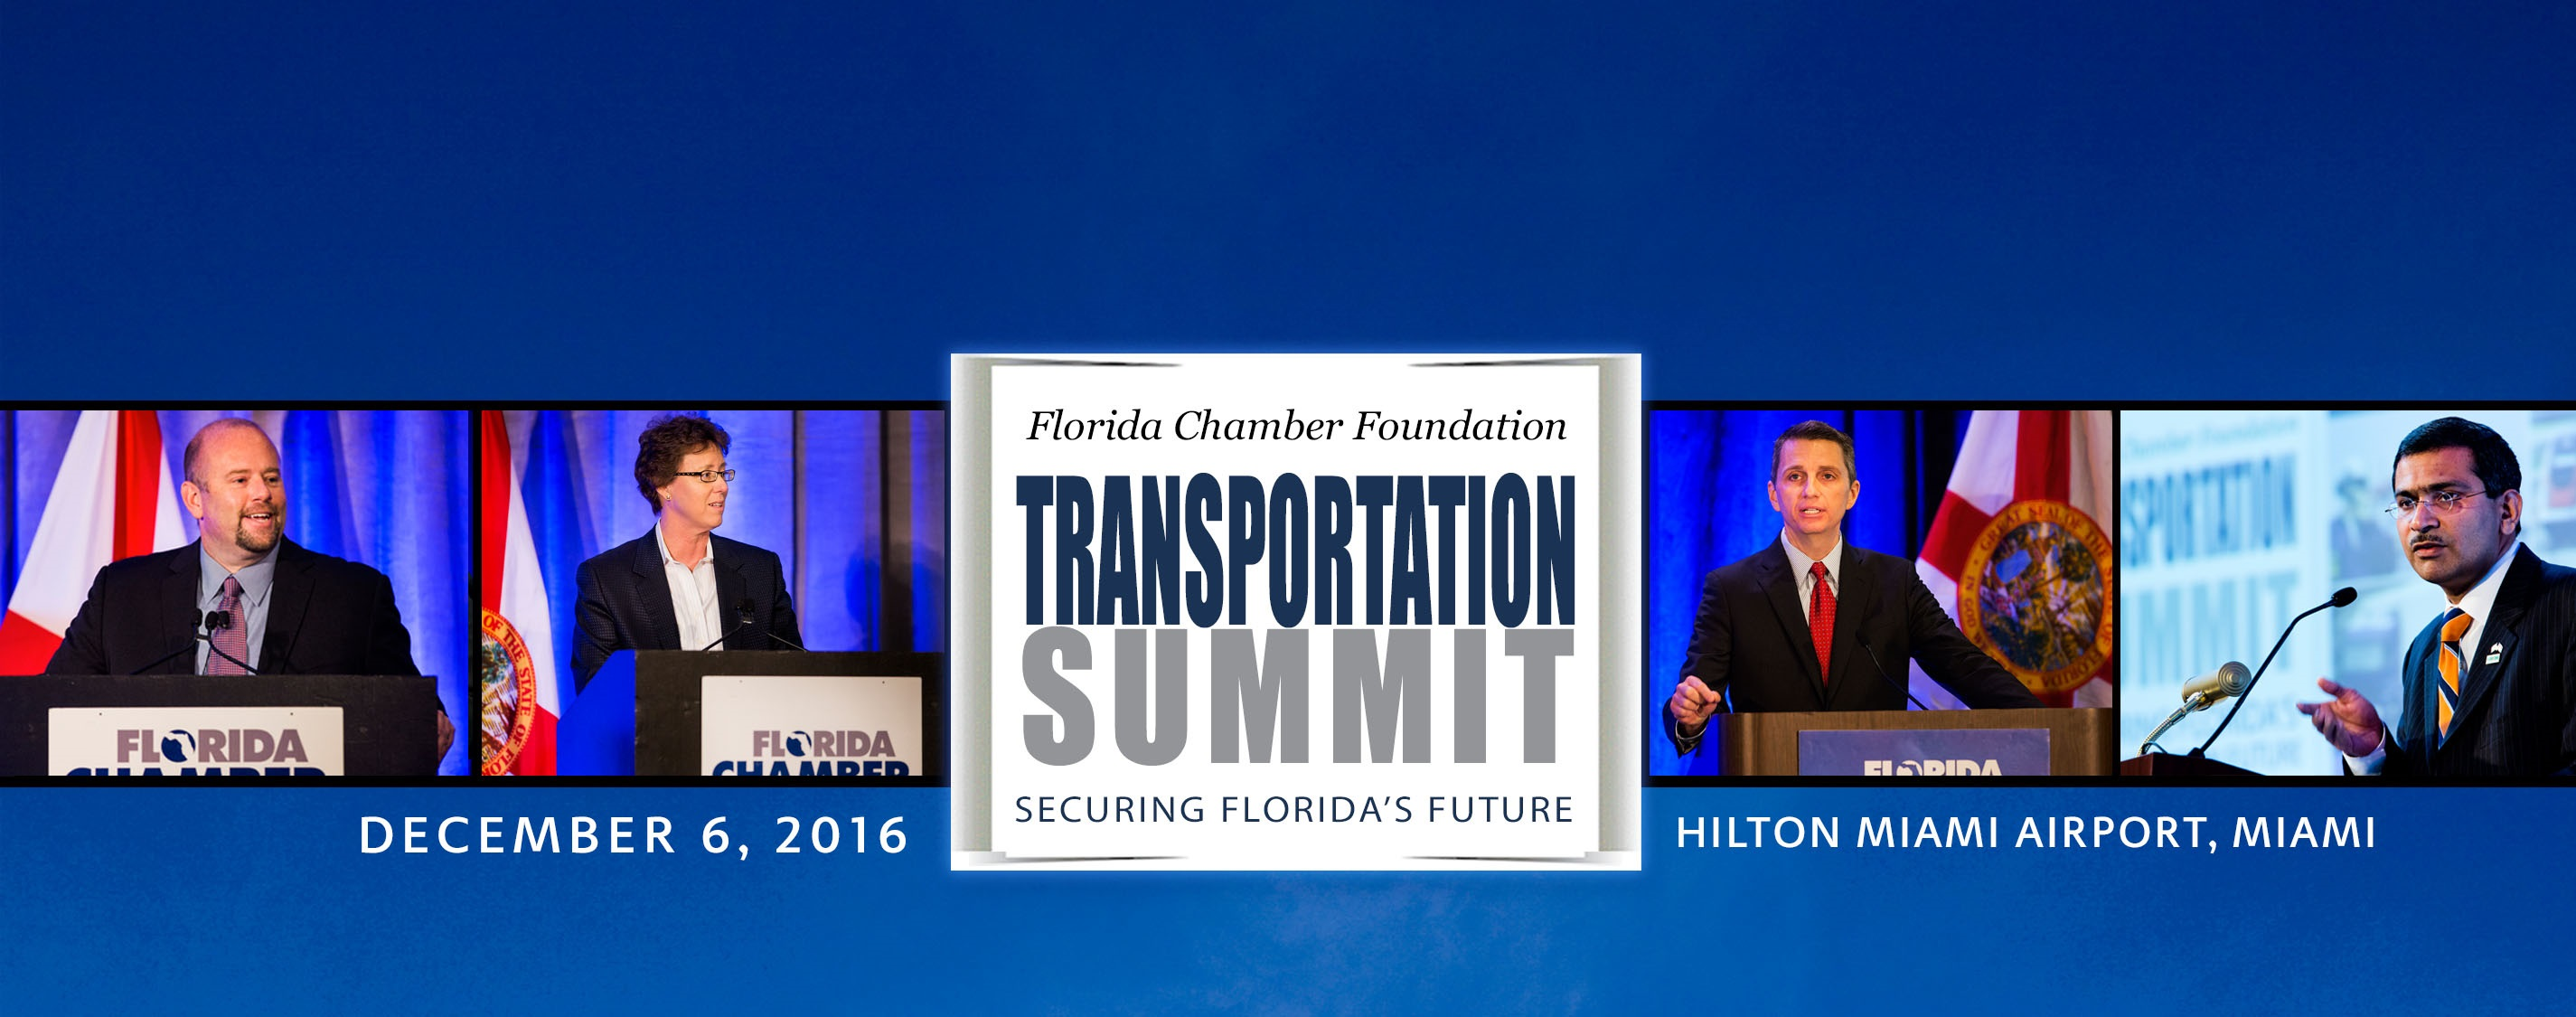 Transportation Summit 2016 banner